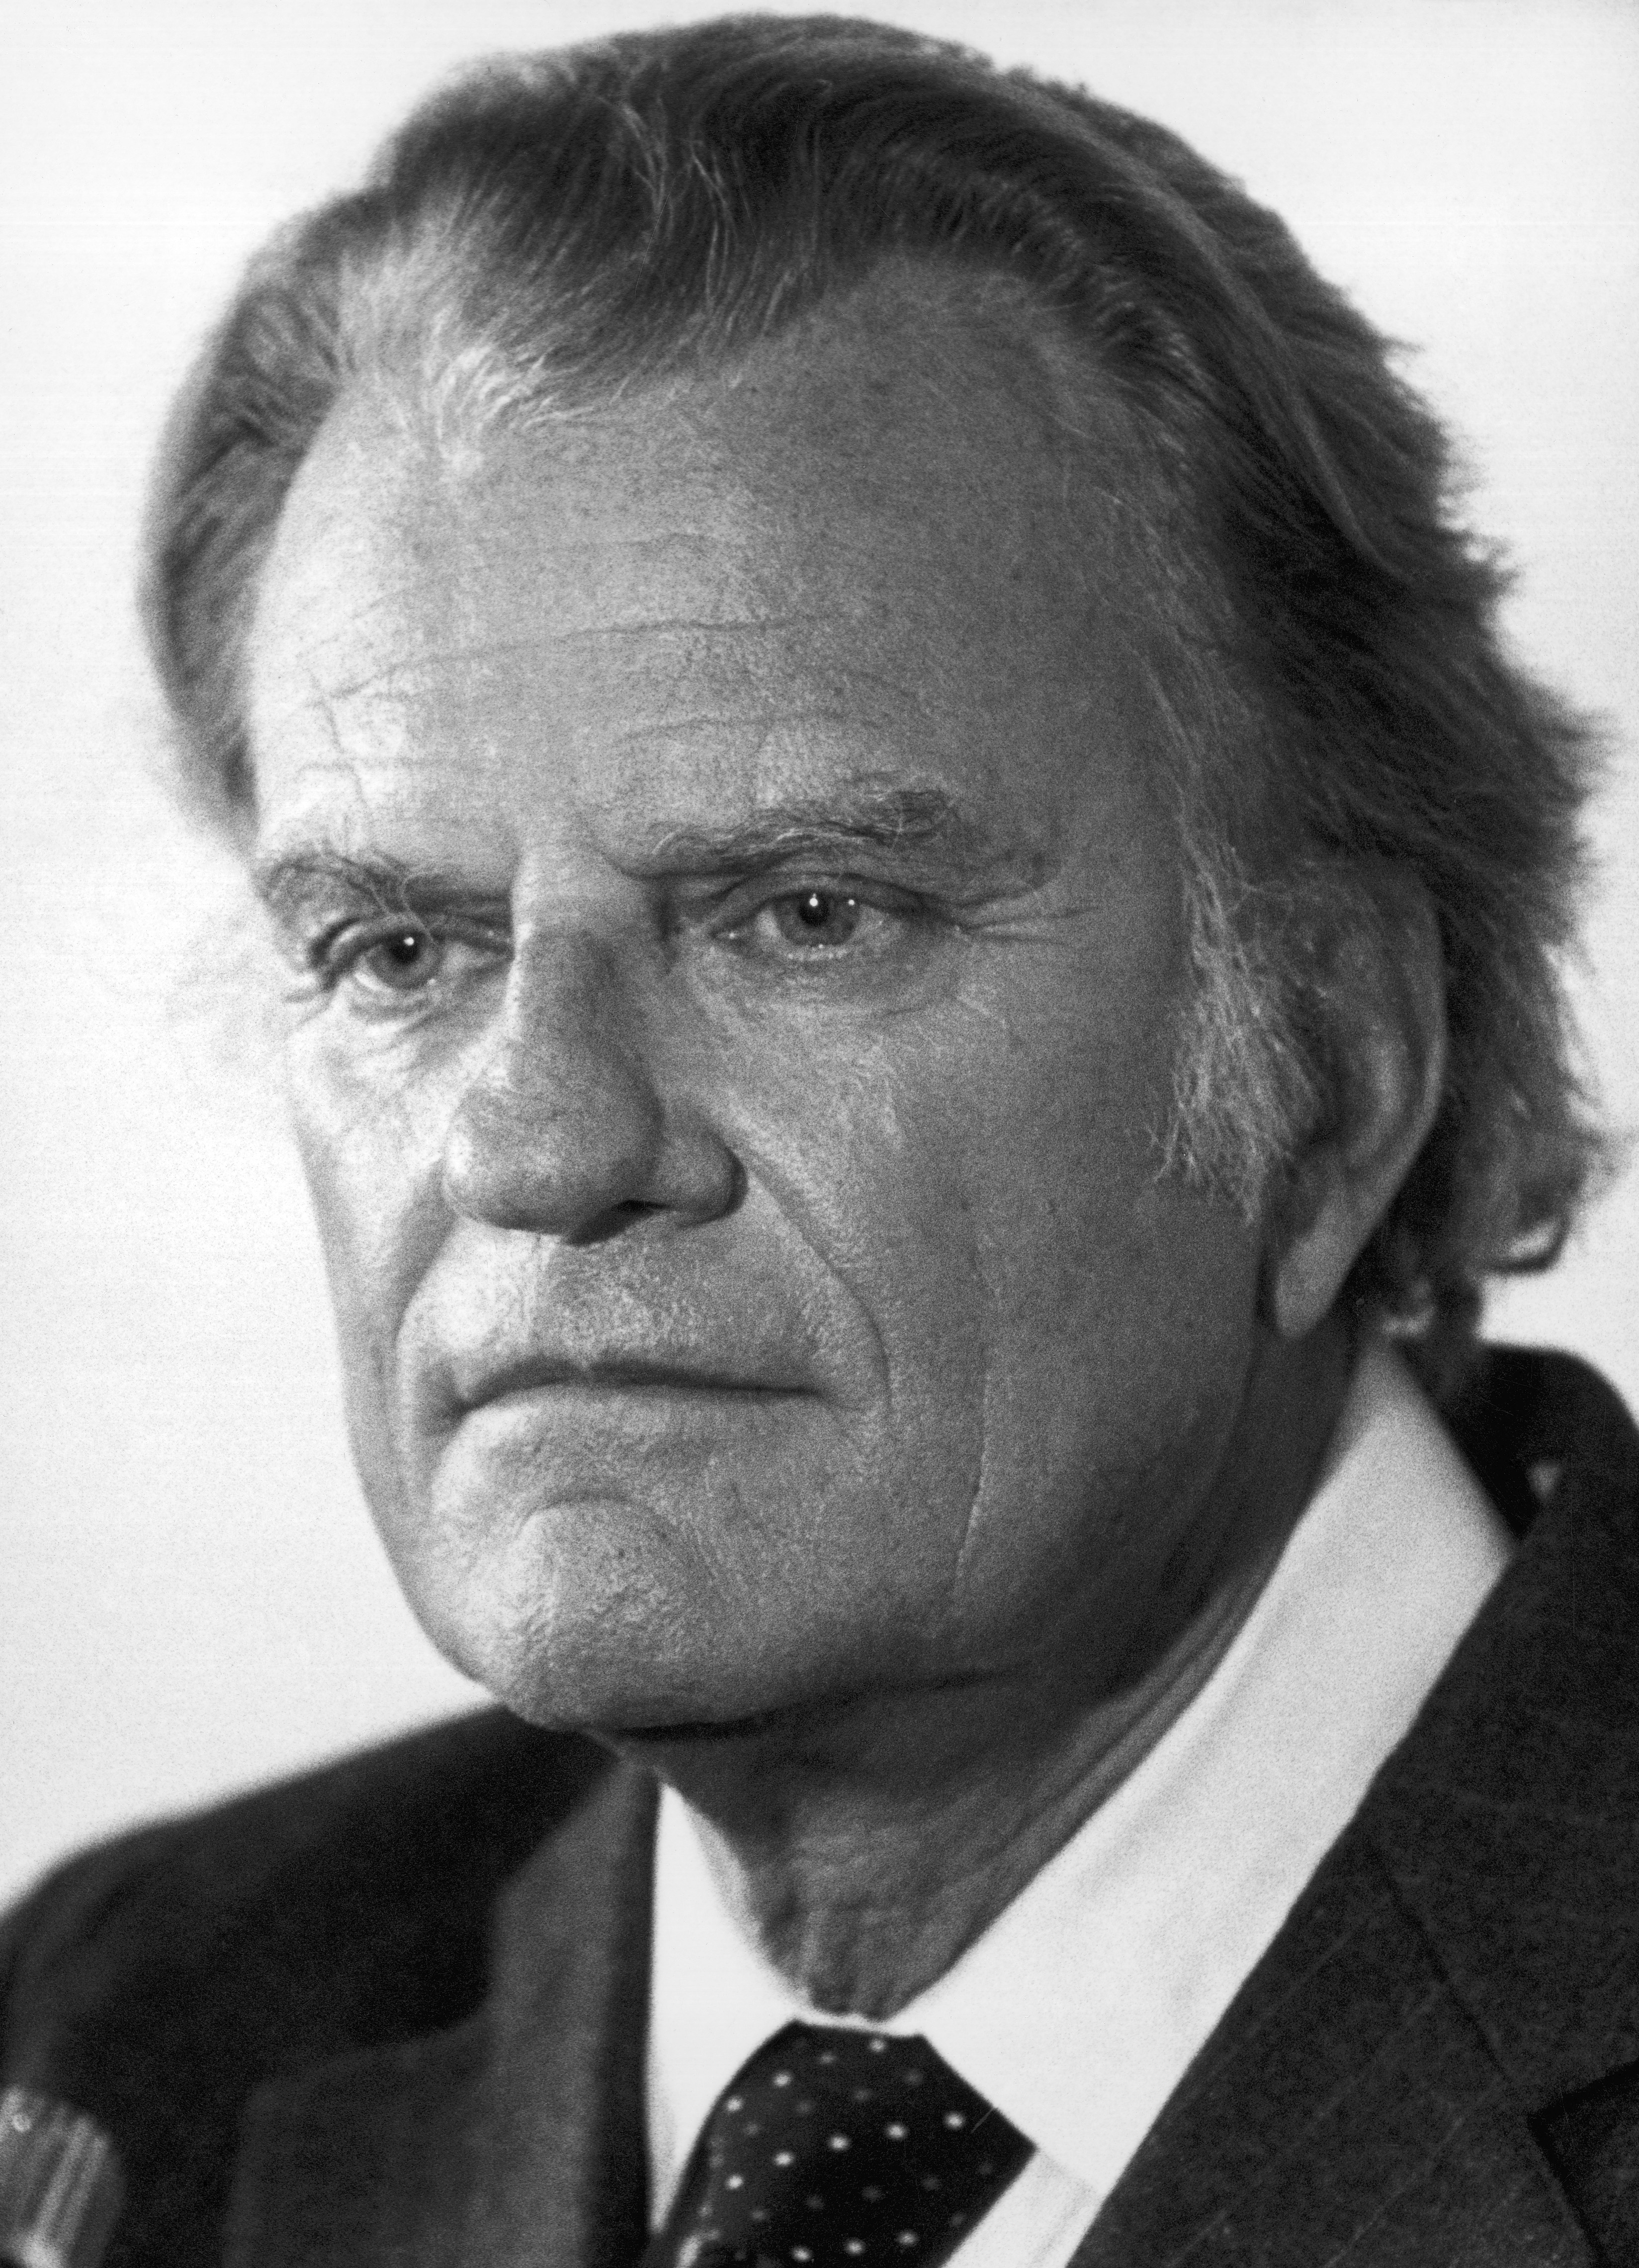 graham catholic singles After rev billy graham's death at the age of 99, pastors, authors and faith leaders alike remembered the evangelist as someone with great humility and a passion for the bible's teachings.